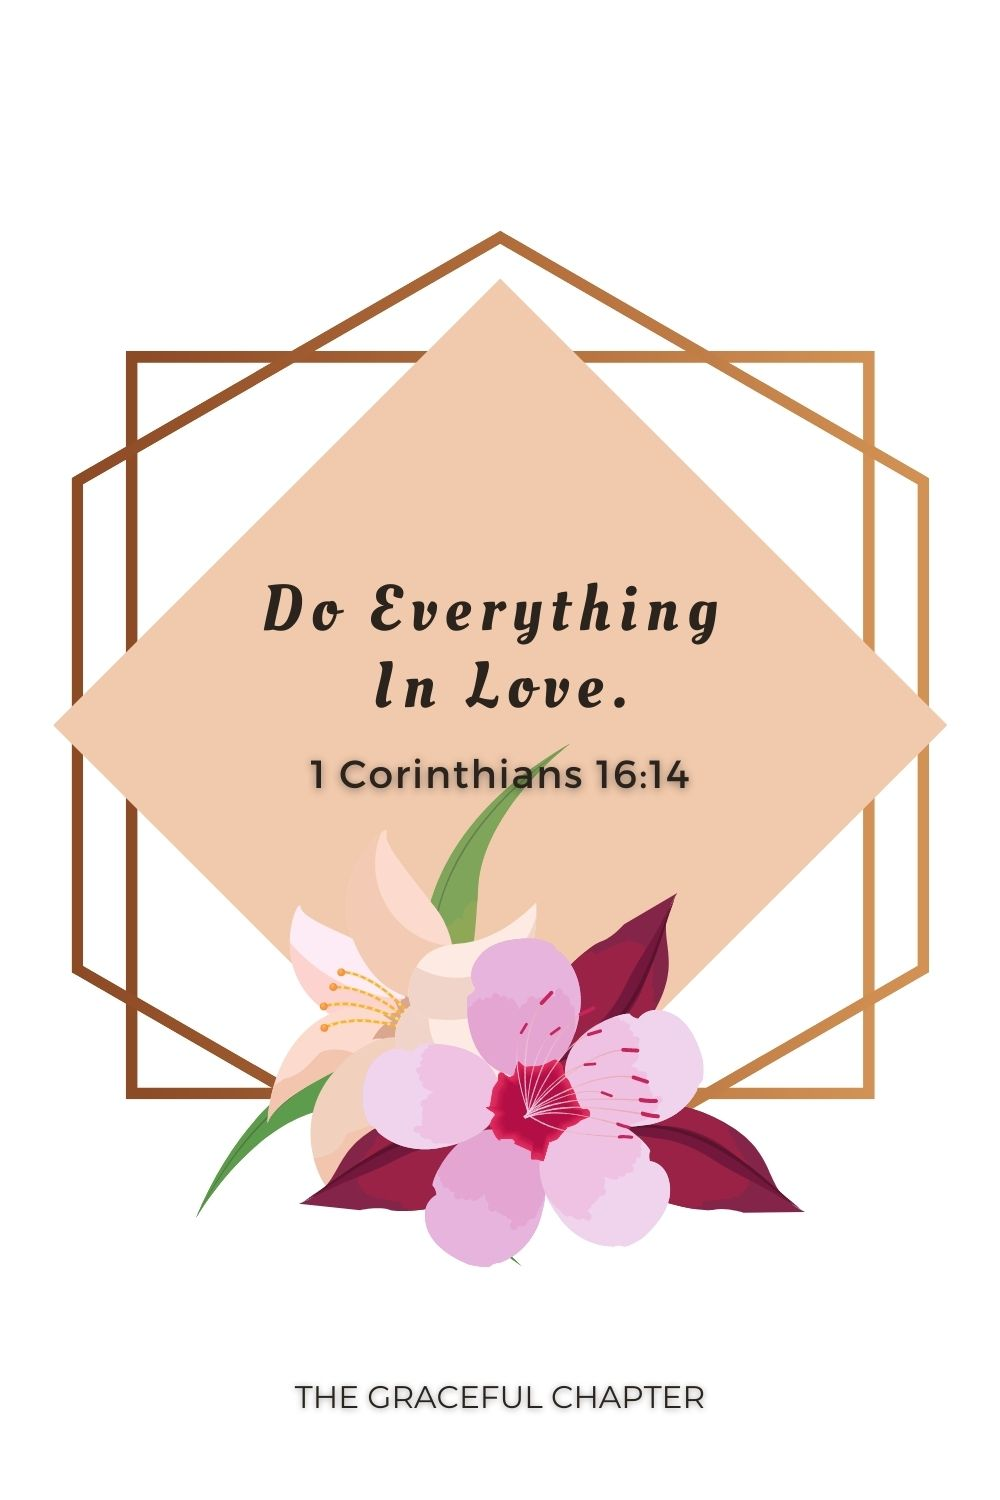 Do everything in love. 1 Corinthians 16:14